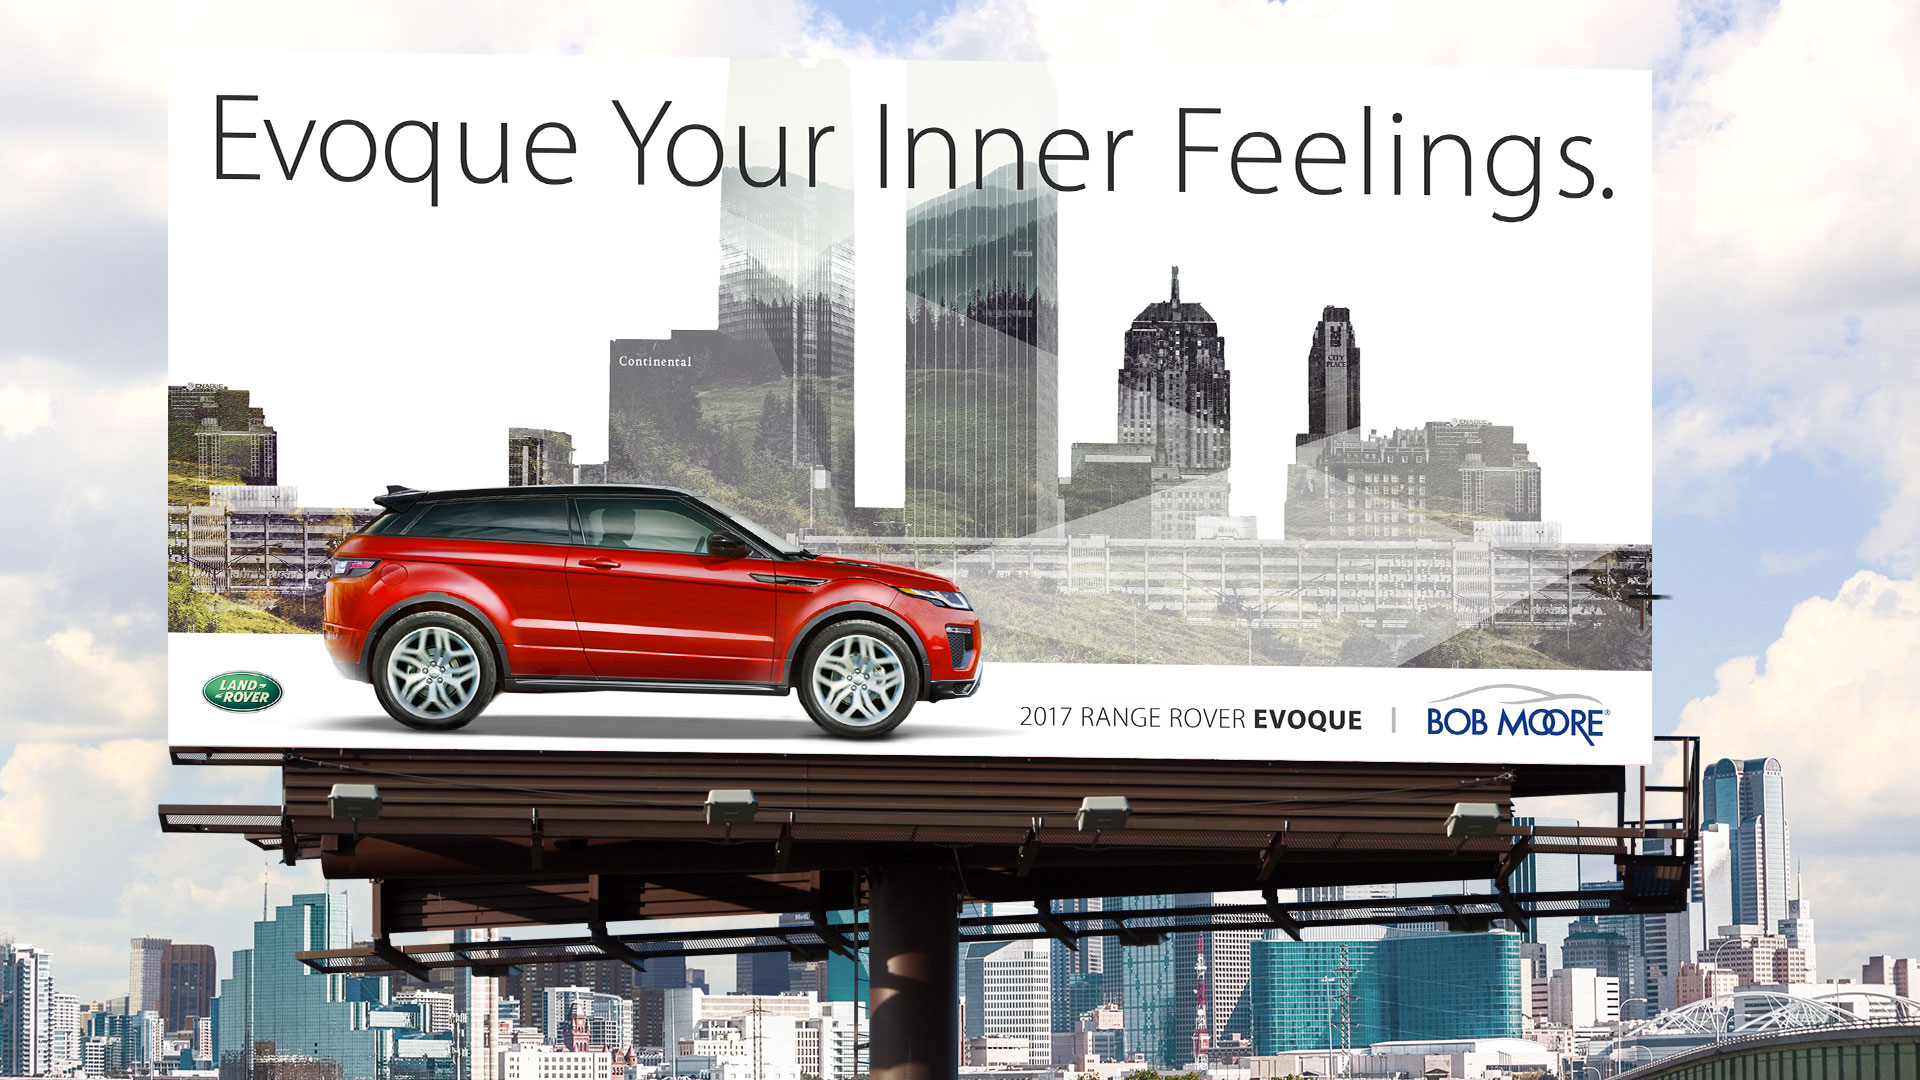 Billboard: Bob Moore Evoque Your Inner Feelings